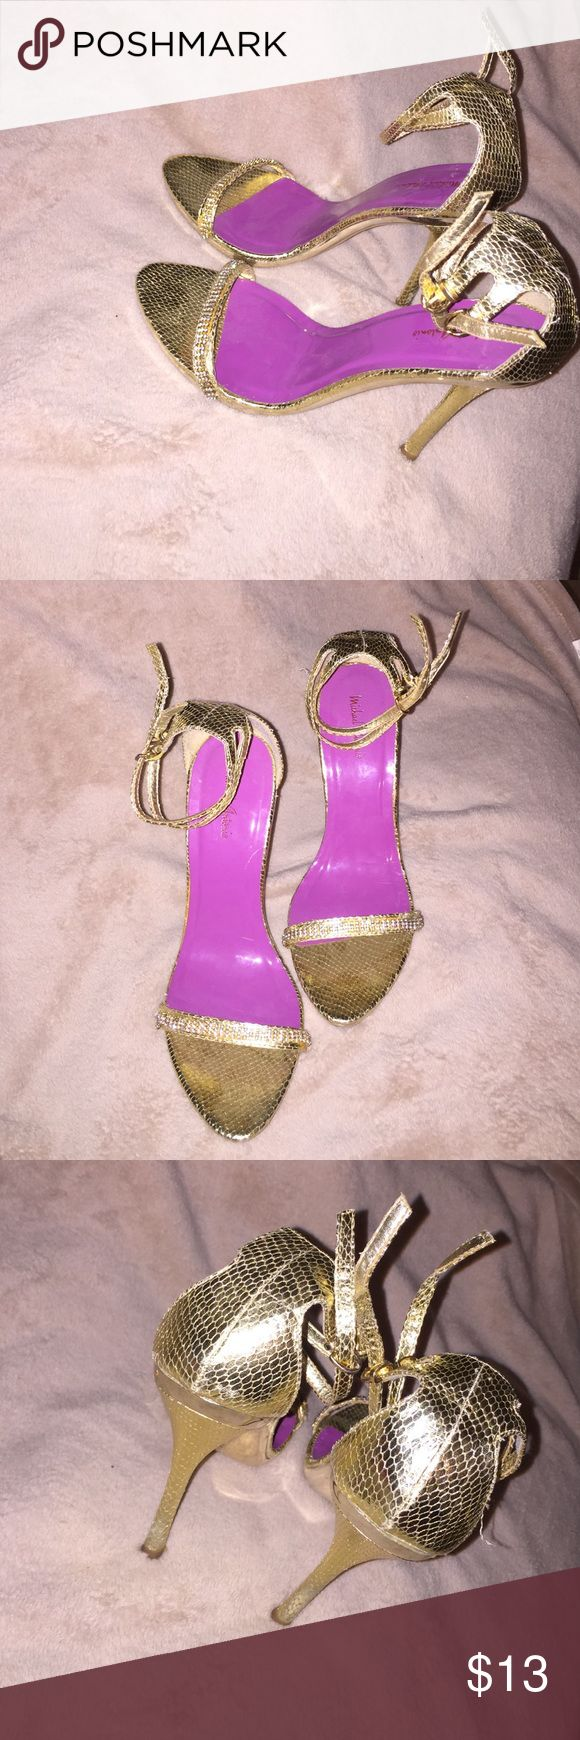 Gold Stiletto Heels Sexy gold stiletto heels. Has two gold straps that wrap around your ankles. Heel Height is 5 inches. Purple soles. Worn once. Shoes Heels